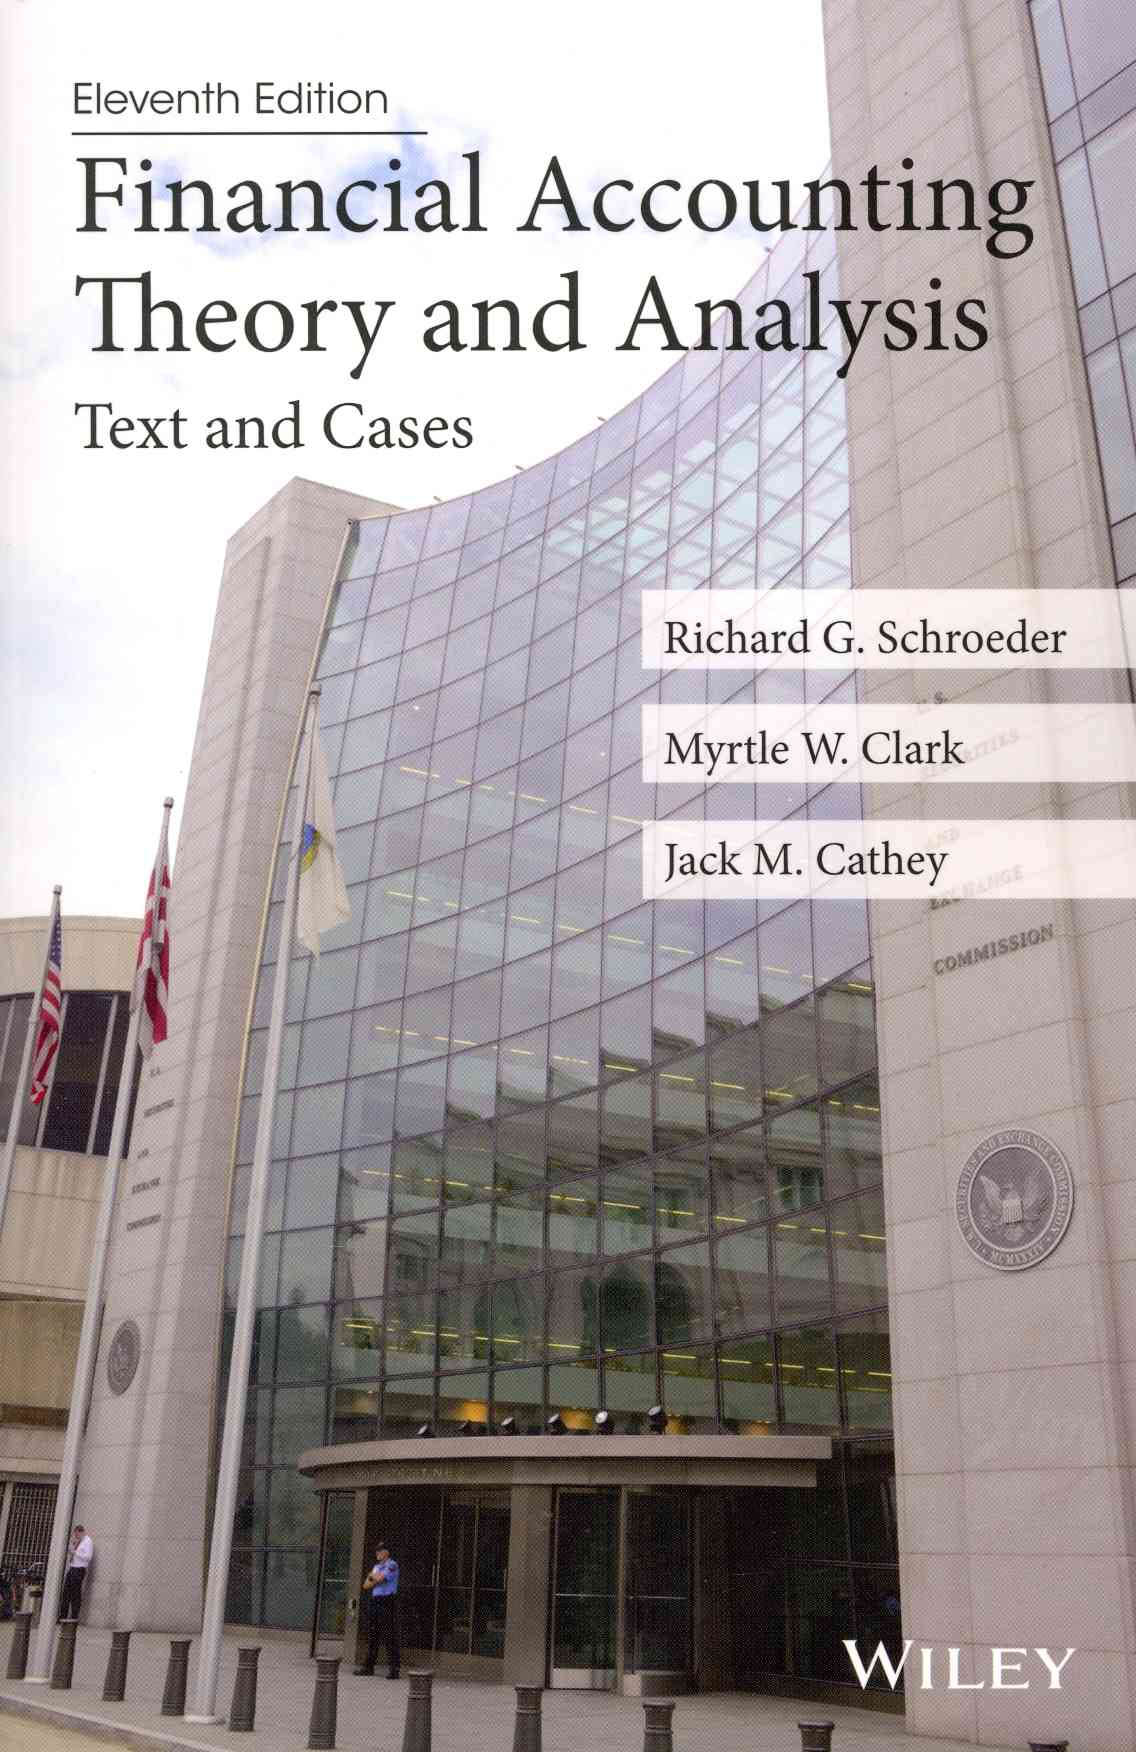 Financial Accounting Theory and Analysis By Schroeder, Richard G./ Clark, Myrtle W./ Cathey, Jack M.